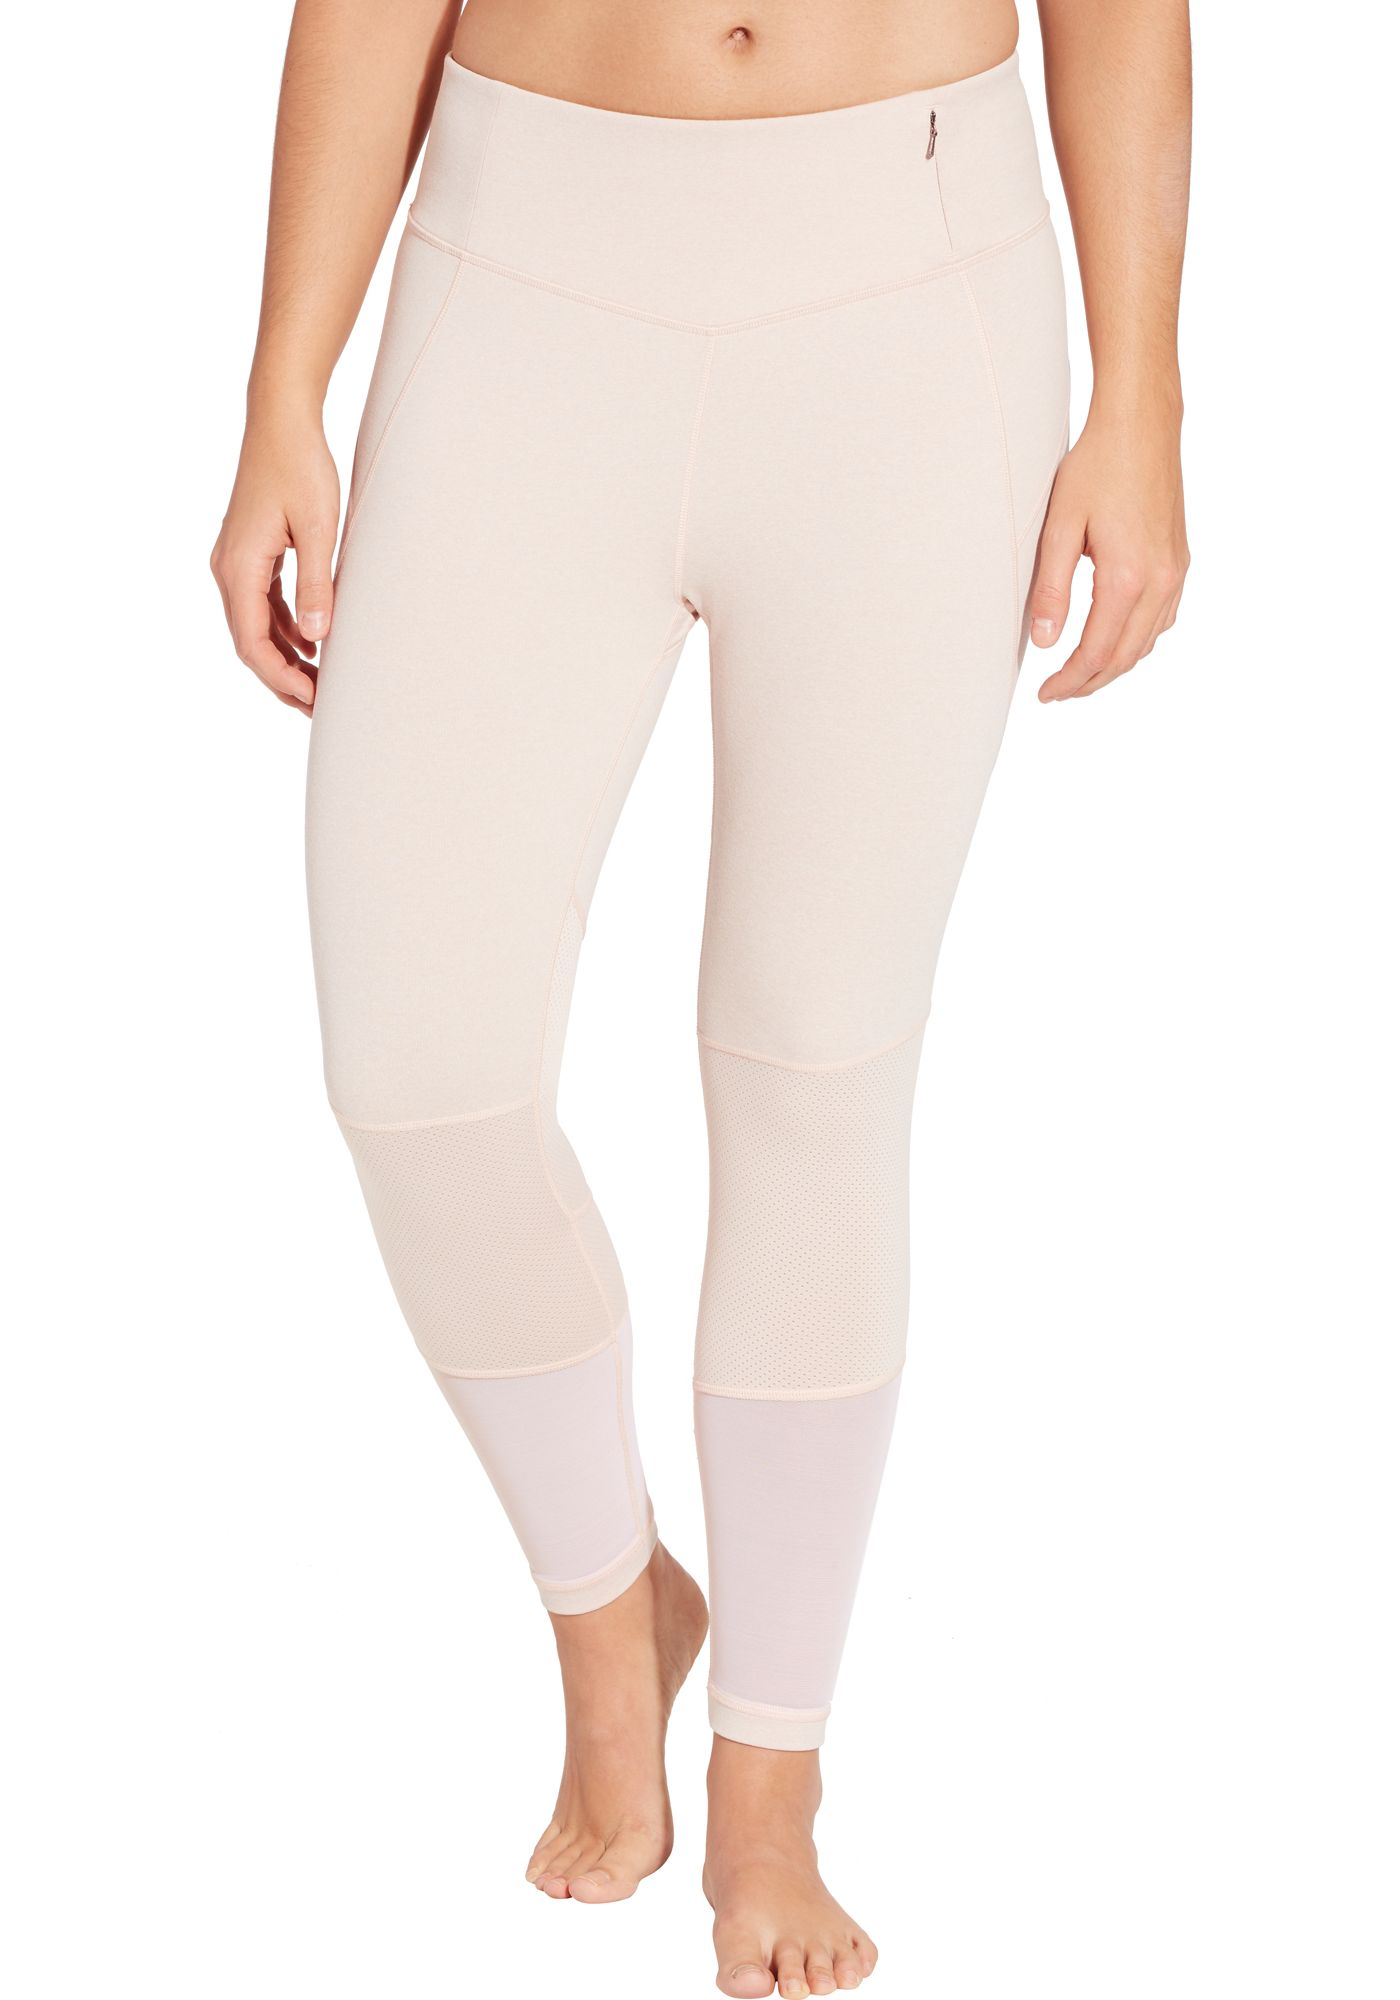 CALIA by Carrie Underwood Women's Essential Heather Filament Leggings